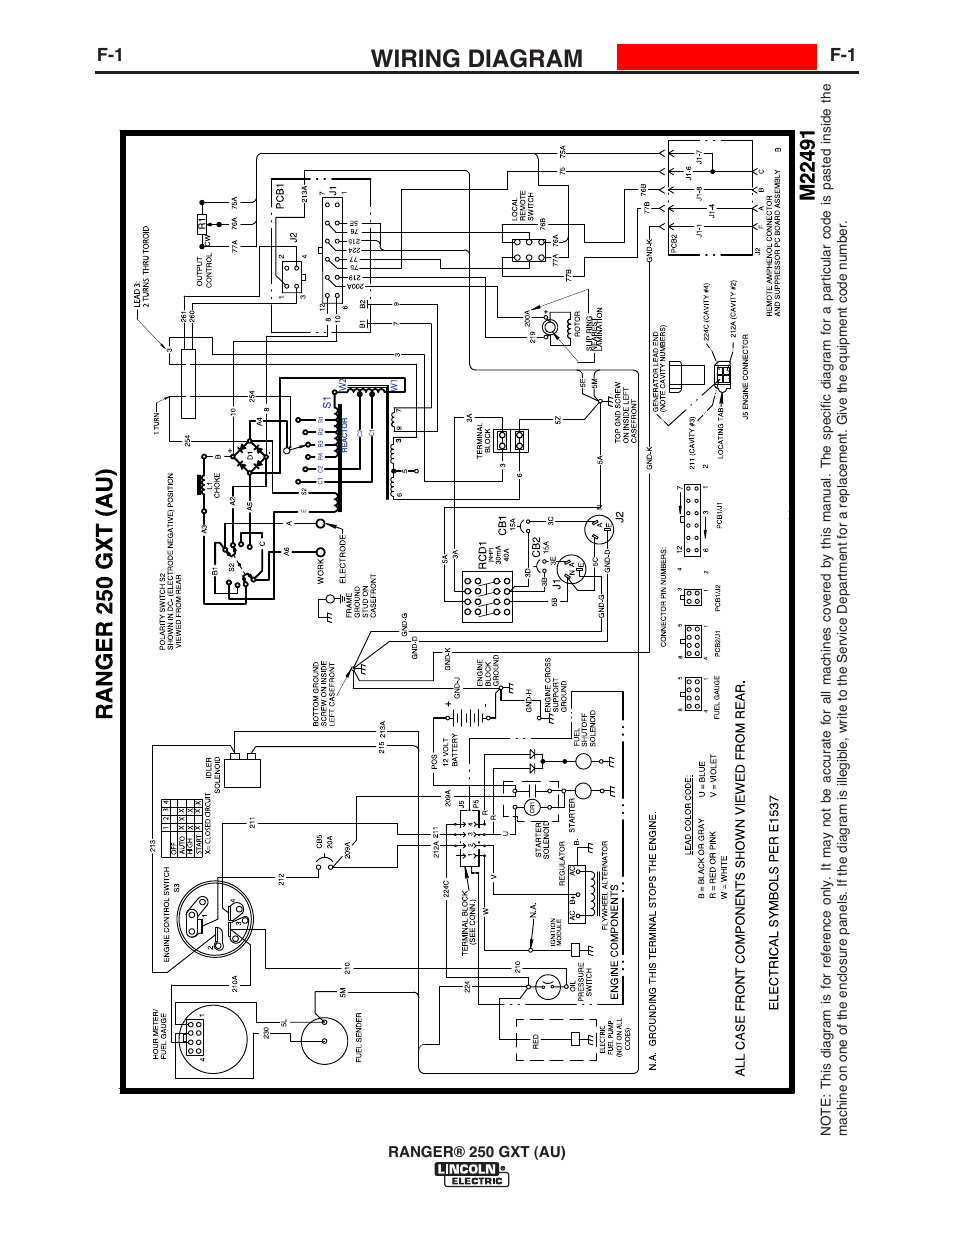 1938 Lincoln Wiring Diagrams Online on 1938 chevy wiring diagram